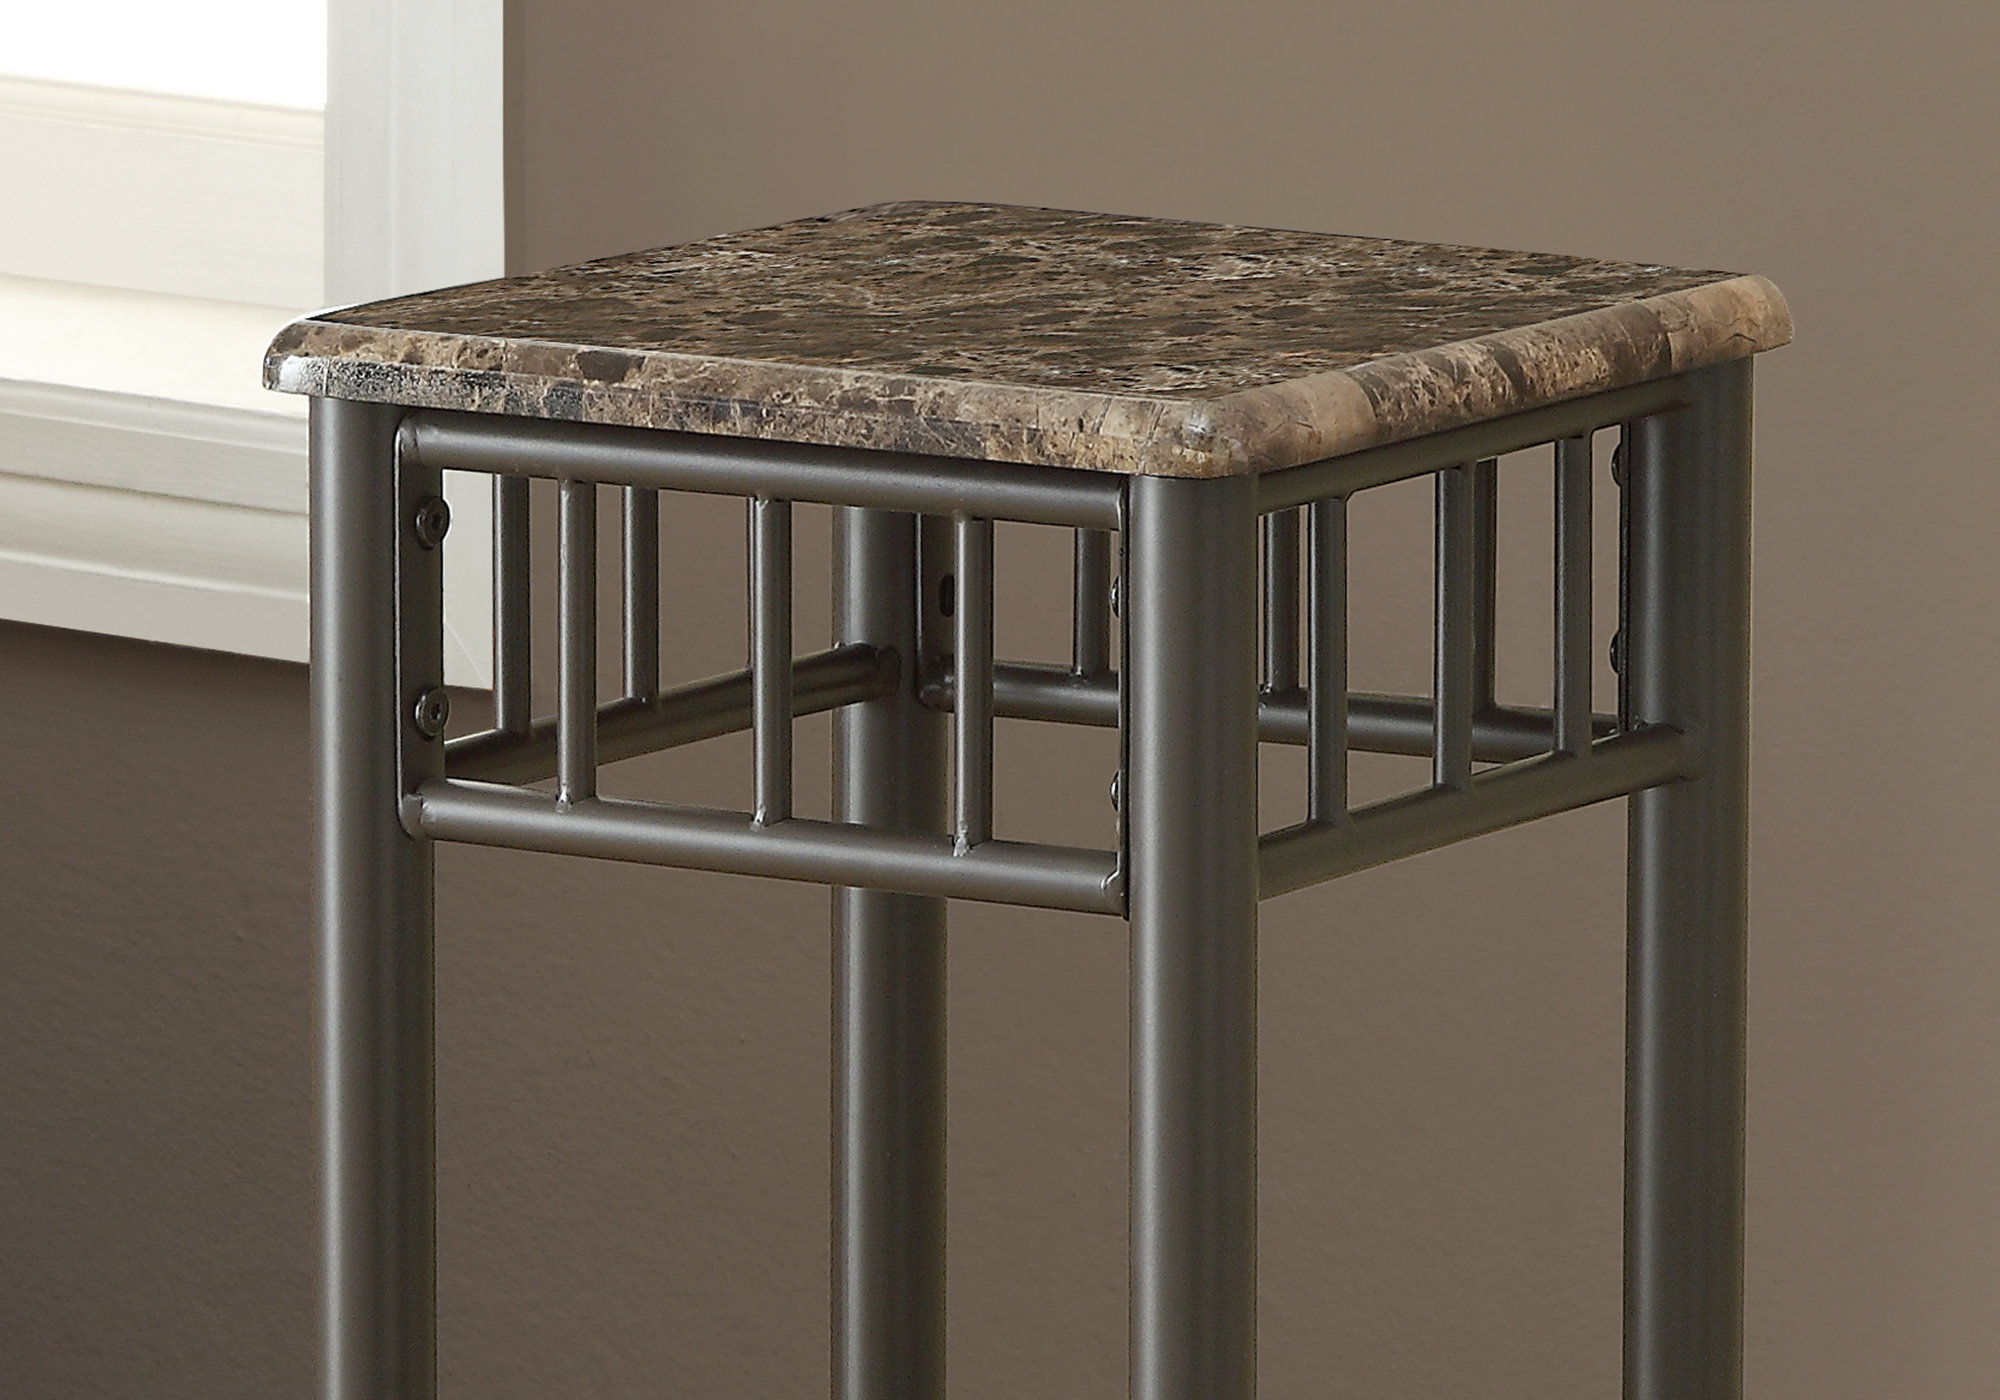 accent table cappuccino marble bronze metal tables monarch fern stand ashley furniture living room frame side contemporary wood small poolside slate end outdoor melbourne home